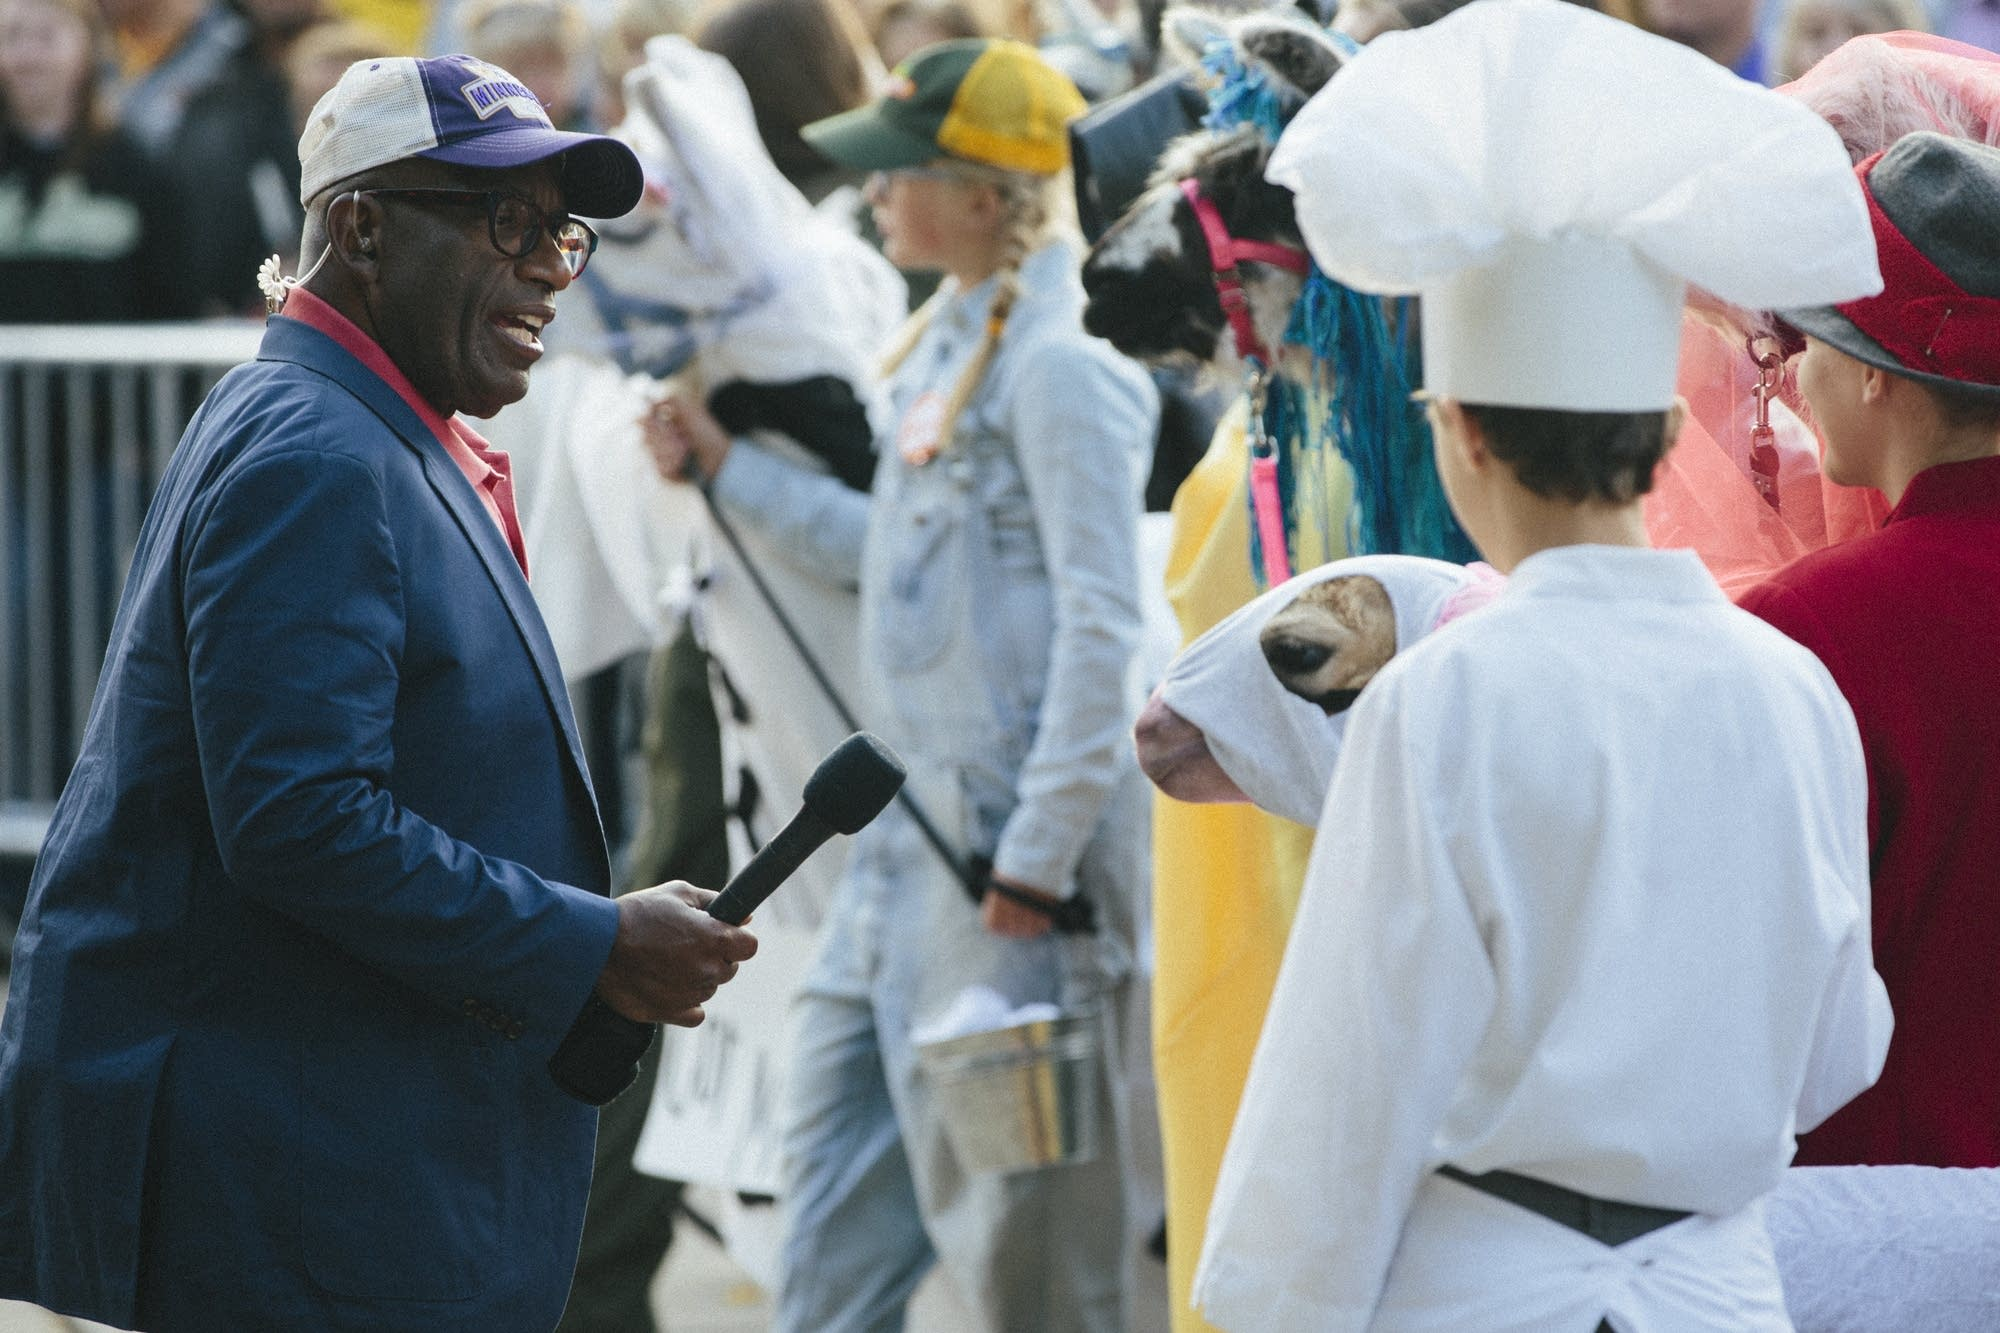 Al Roker of the Today Show judges a llama costume contest